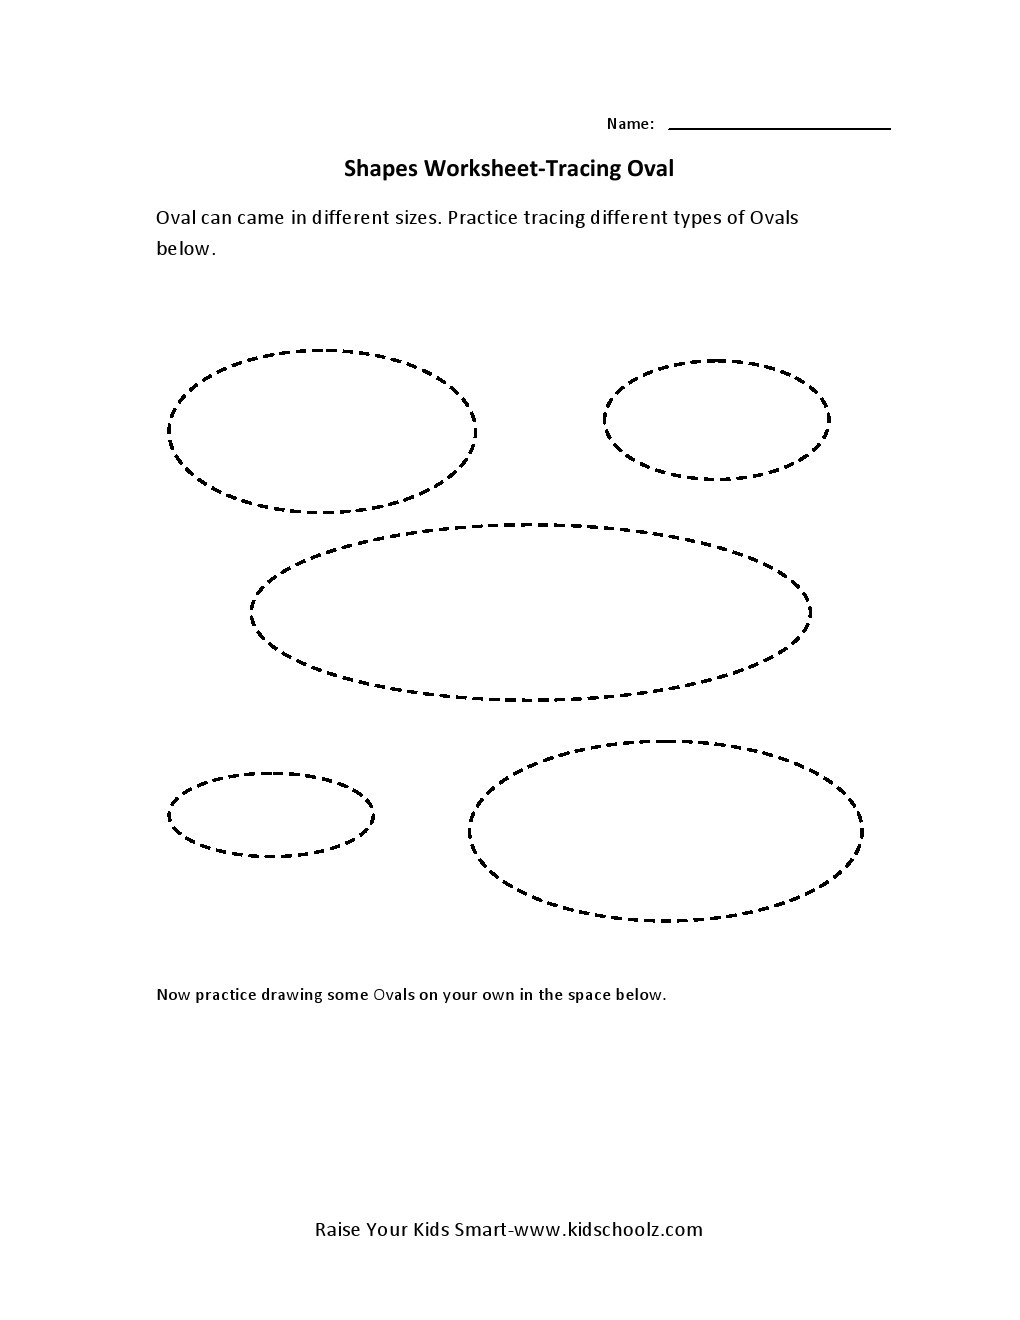 tracing worksheets oval kidschoolz. Black Bedroom Furniture Sets. Home Design Ideas